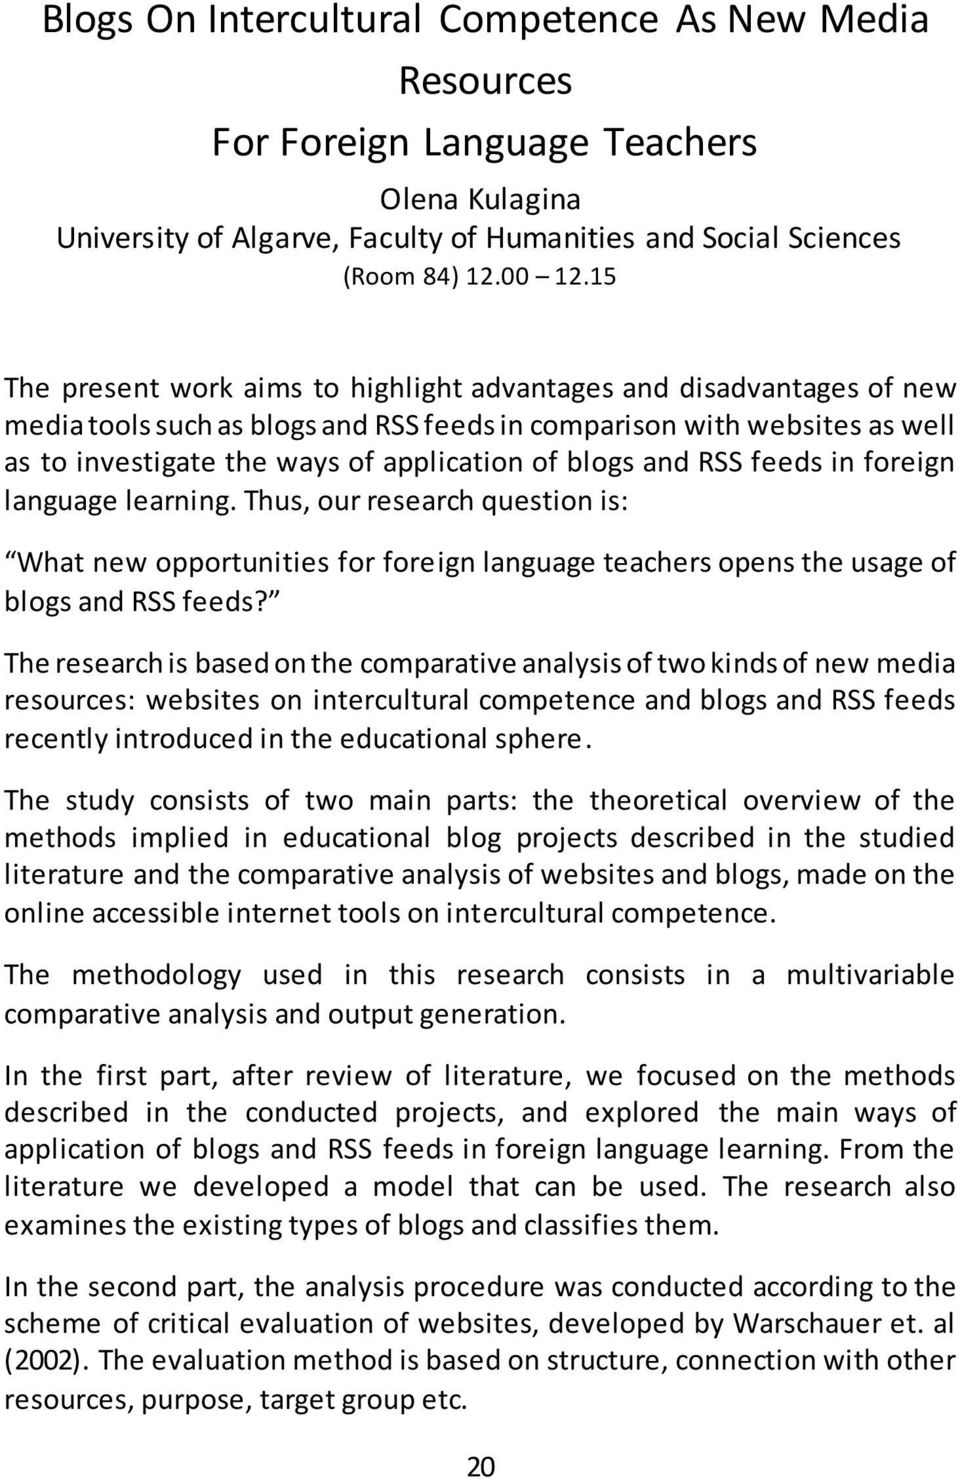 blogs and RSS feeds in foreign language learning. Thus, our research question is: What new opportunities for foreign language teachers opens the usage of blogs and RSS feeds?